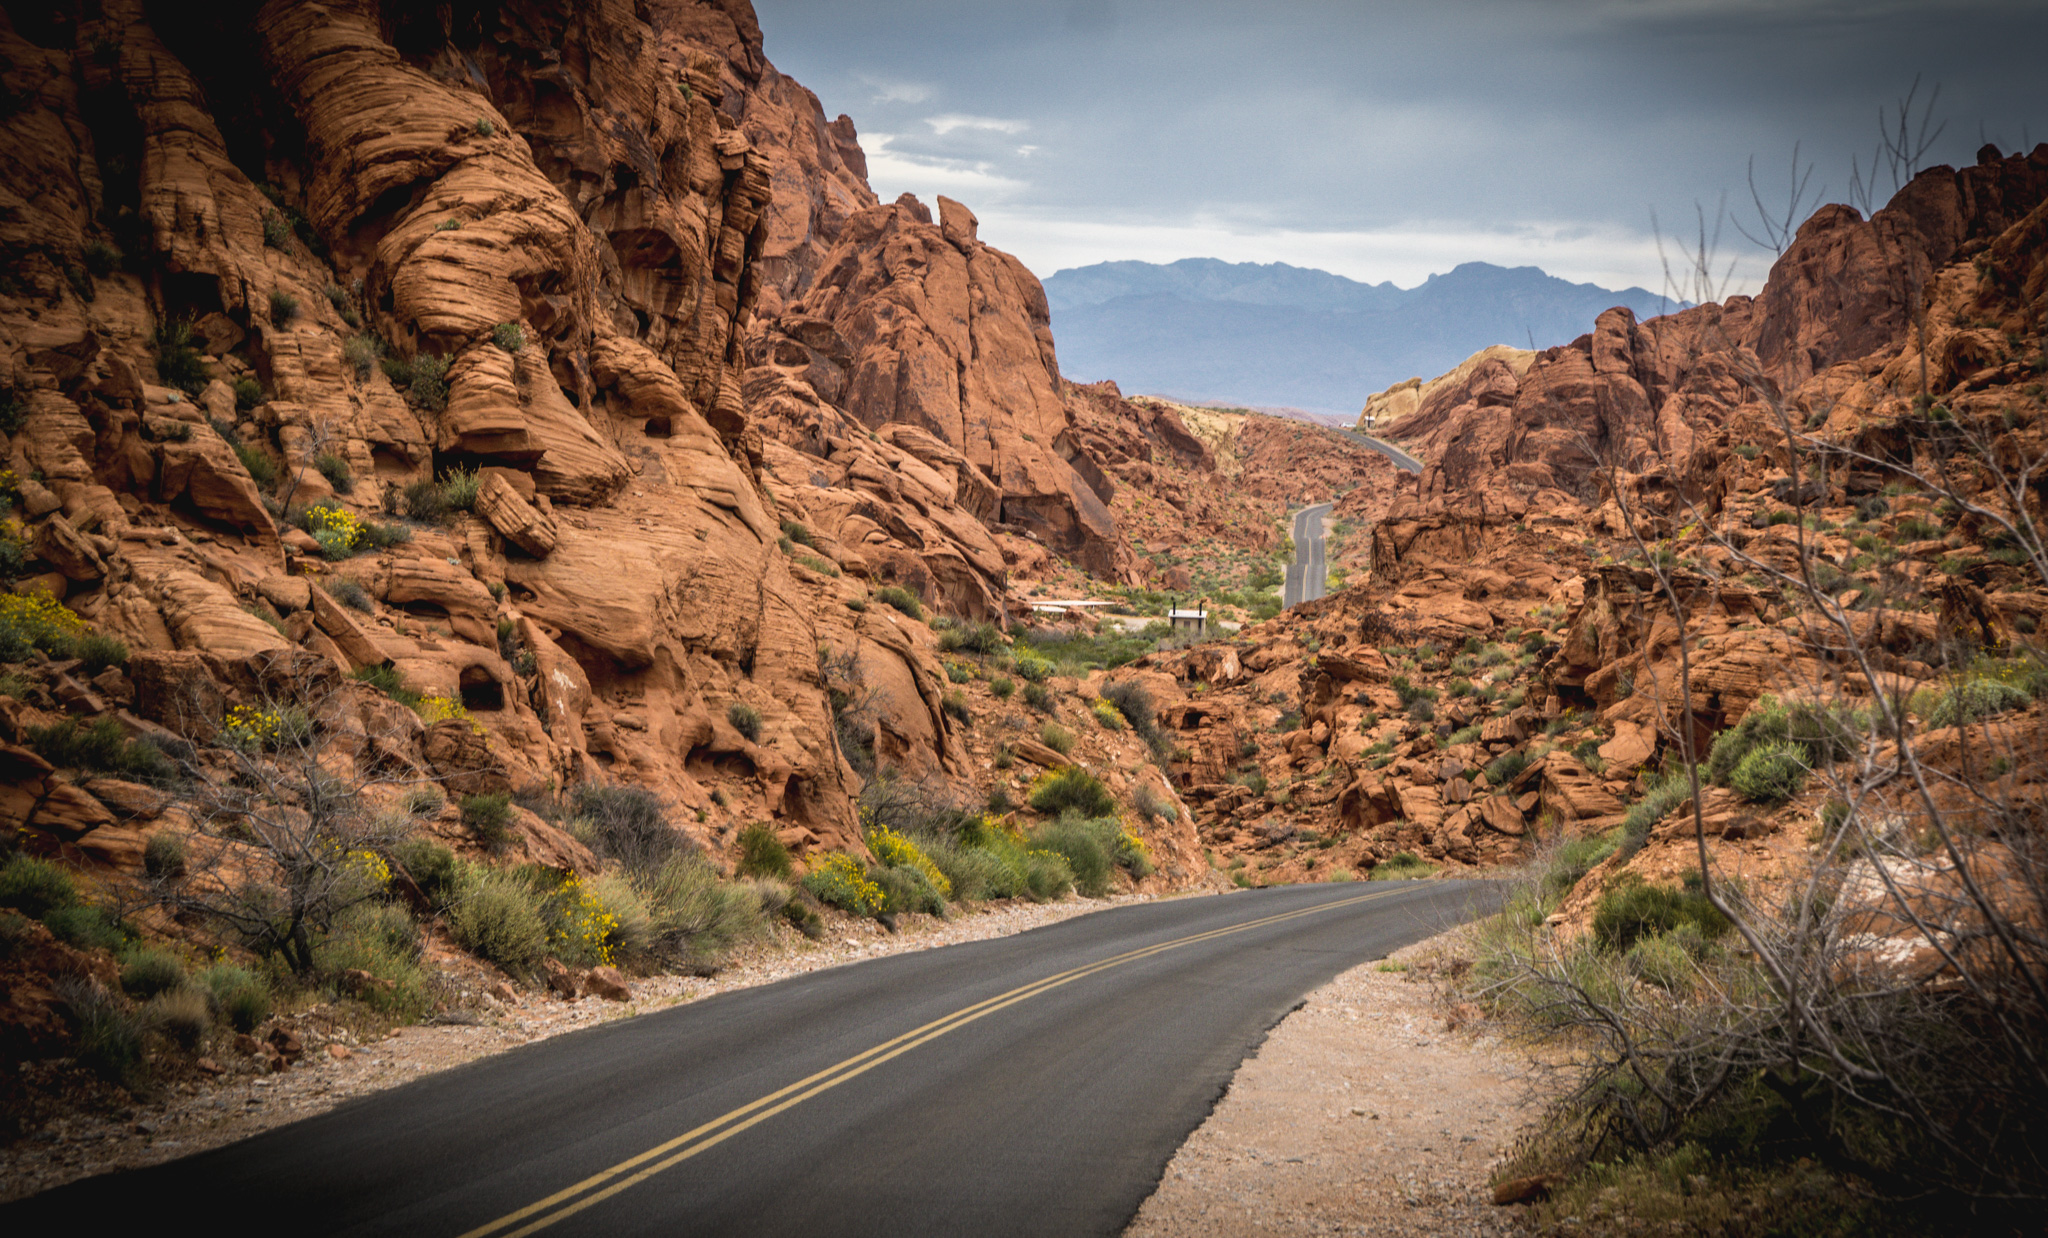 Road through Valley of Fire State Park in Nevada